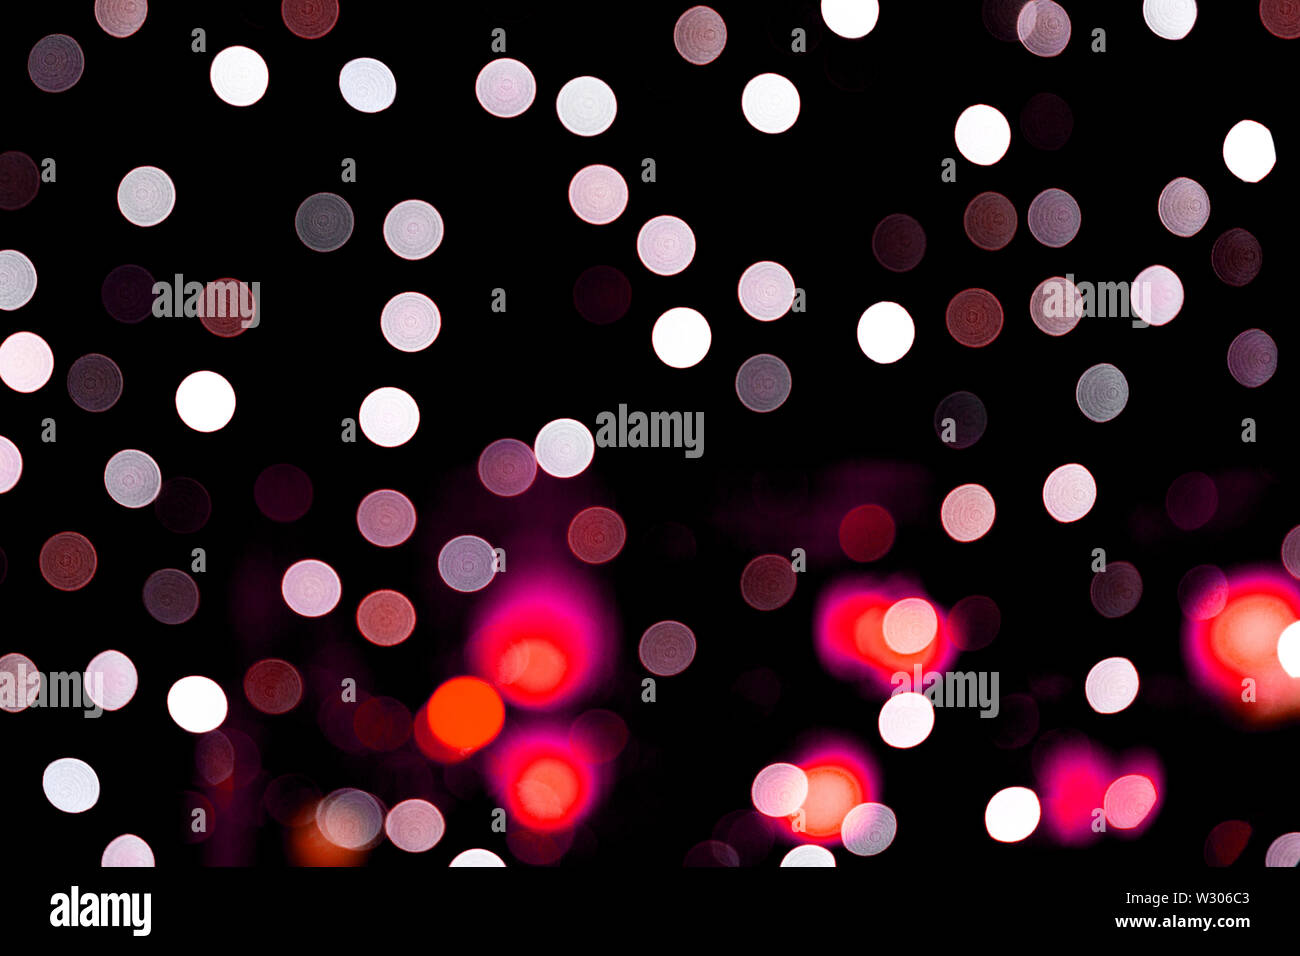 Unfocused abstract colourful bokeh on black background. defocused and blurred many round light. - Stock Image